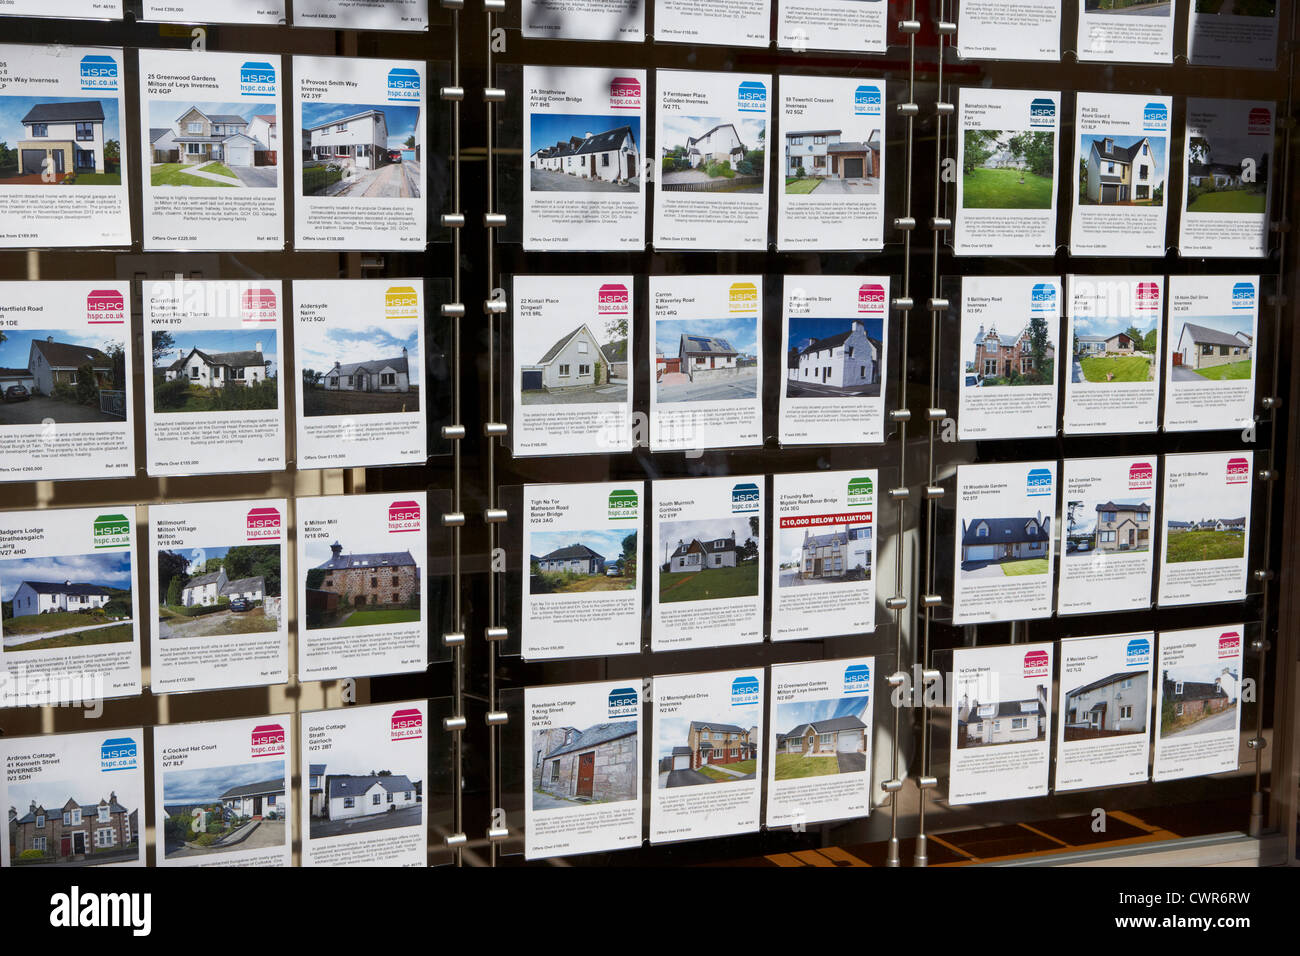 properties for sale in the window of an estate agency Inverness highland scotland uk - Stock Image